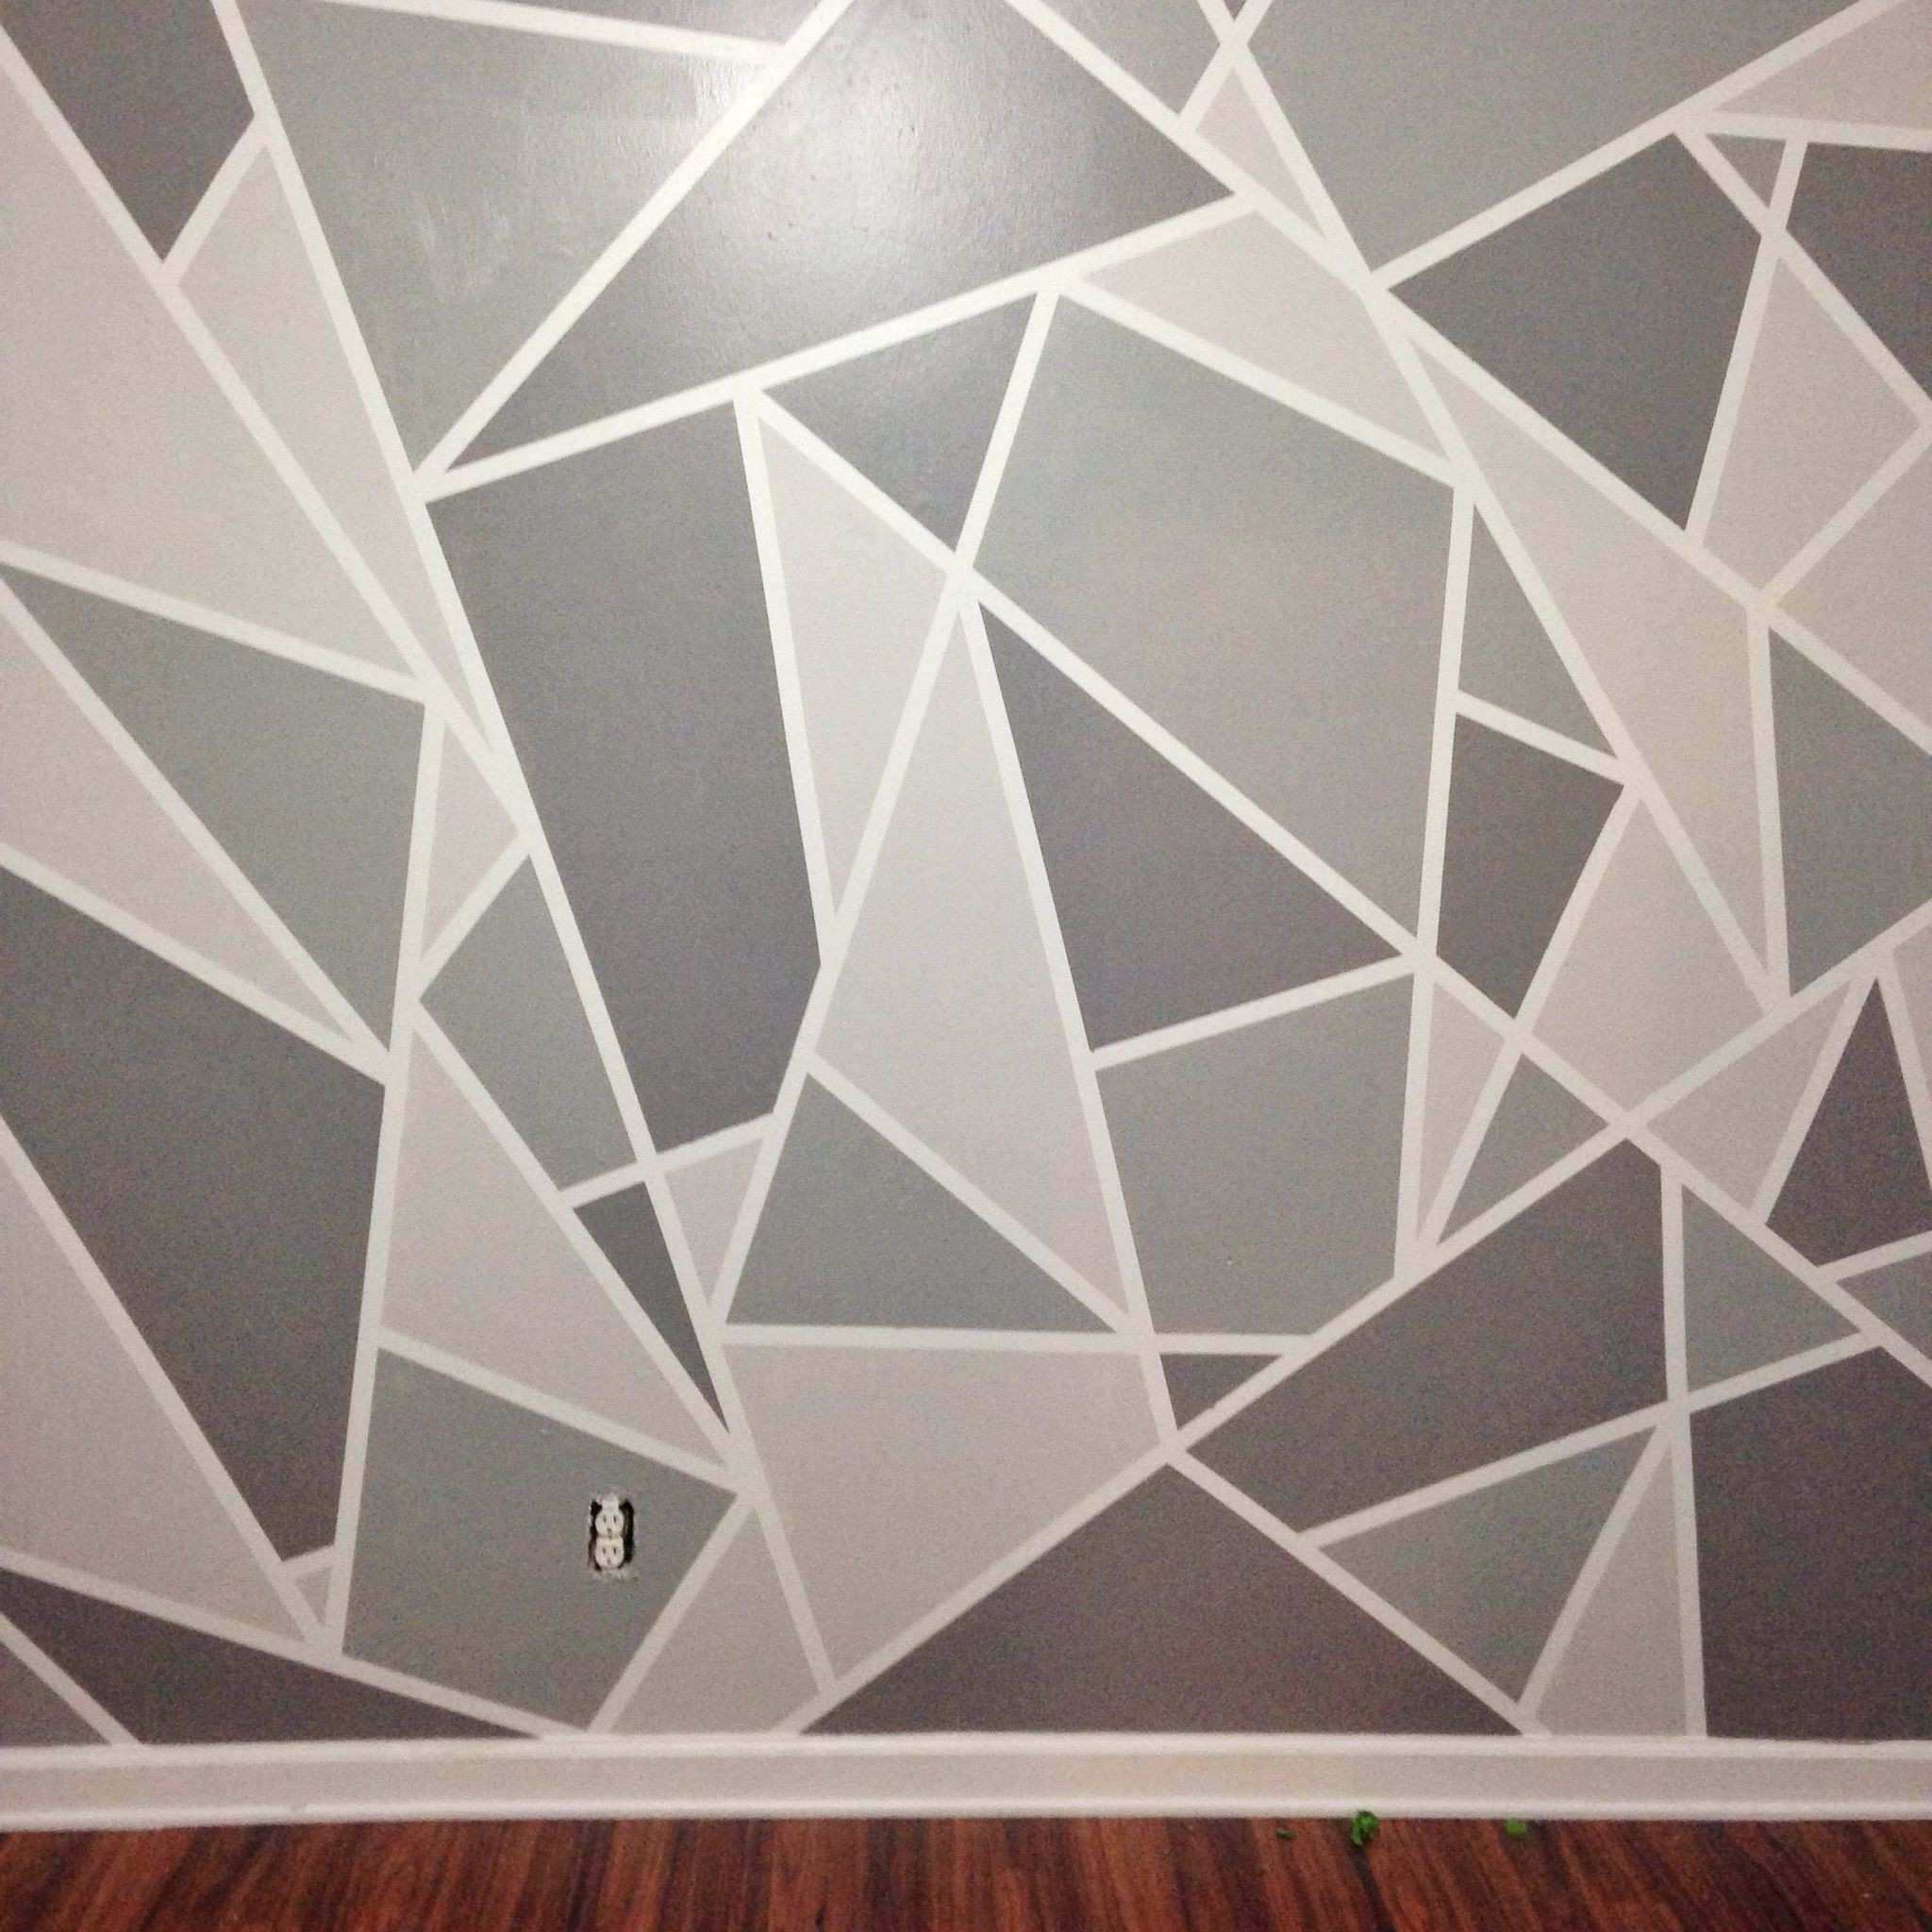 3 Dimensional Wall Art In Most Recent 3 Dimensional Wall Art Lovely Diy Faux Wallpaper Accent Wall (View 10 of 15)